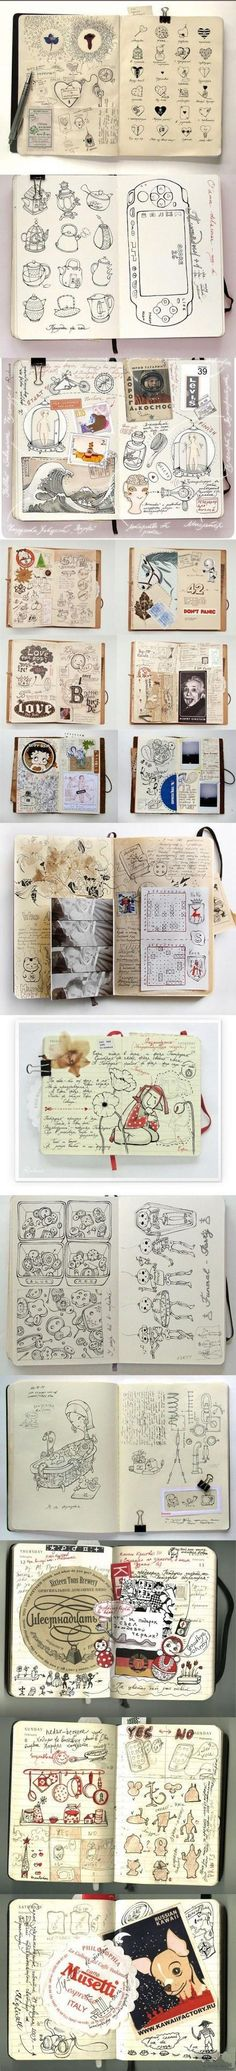 Sketchbook art journal